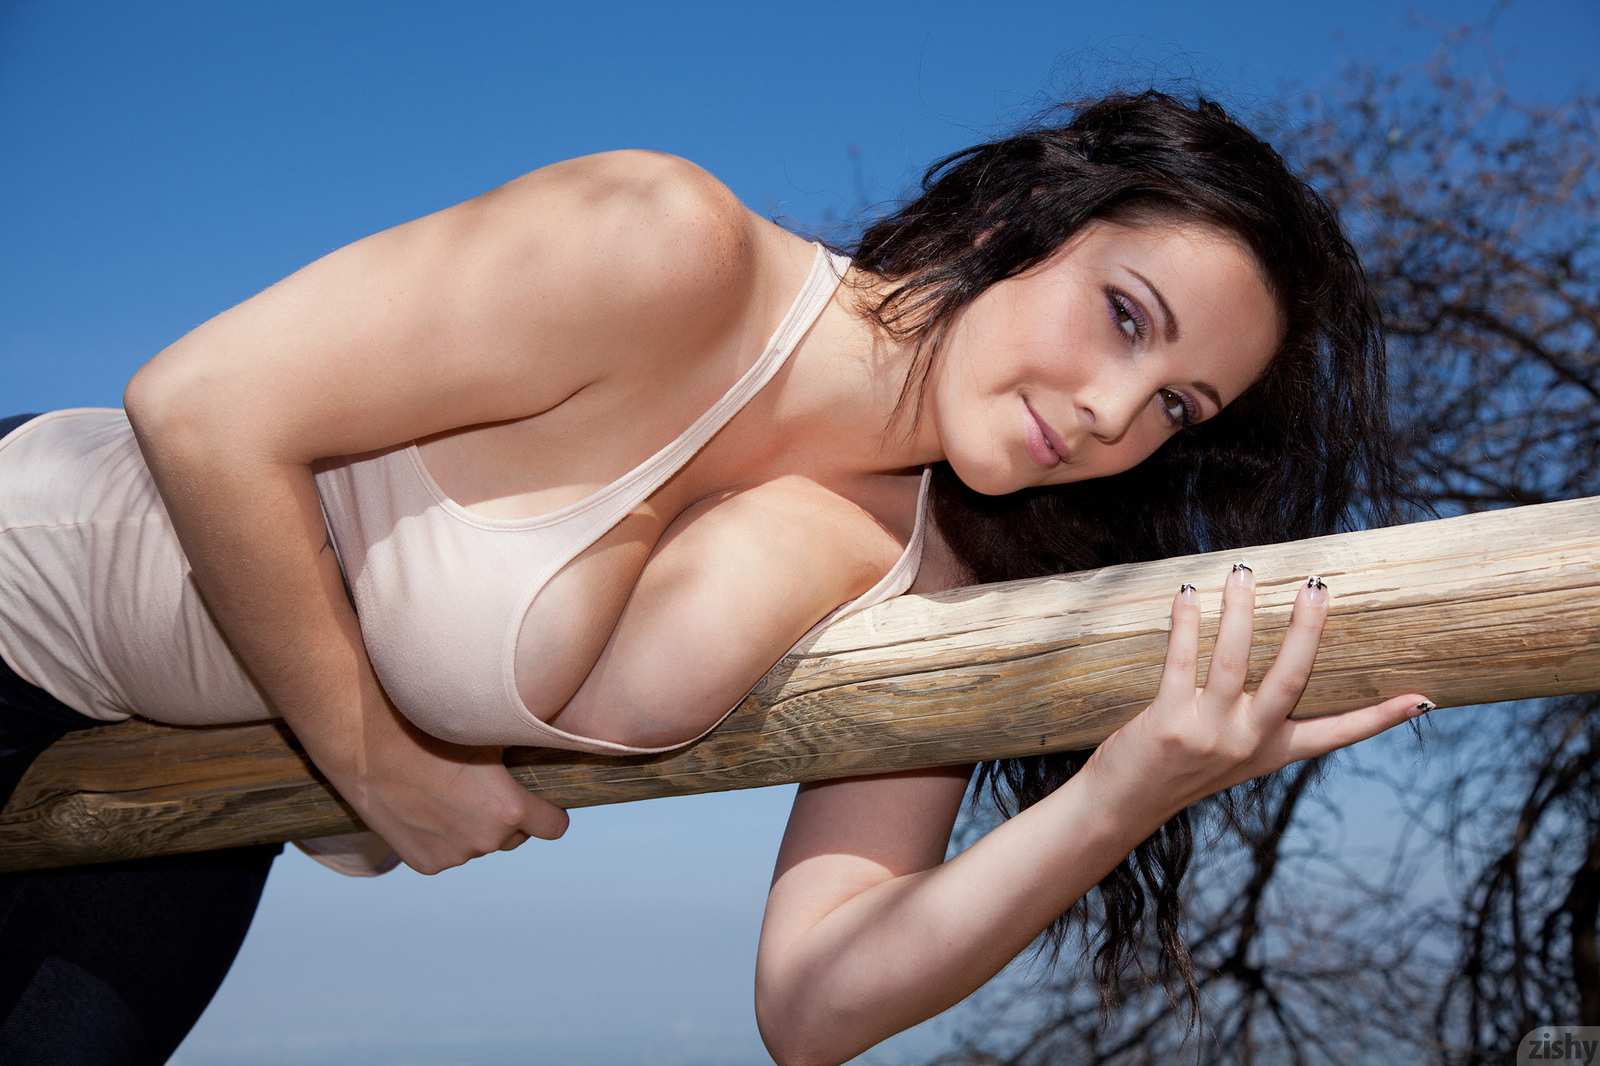 Hot Country Girl Naked